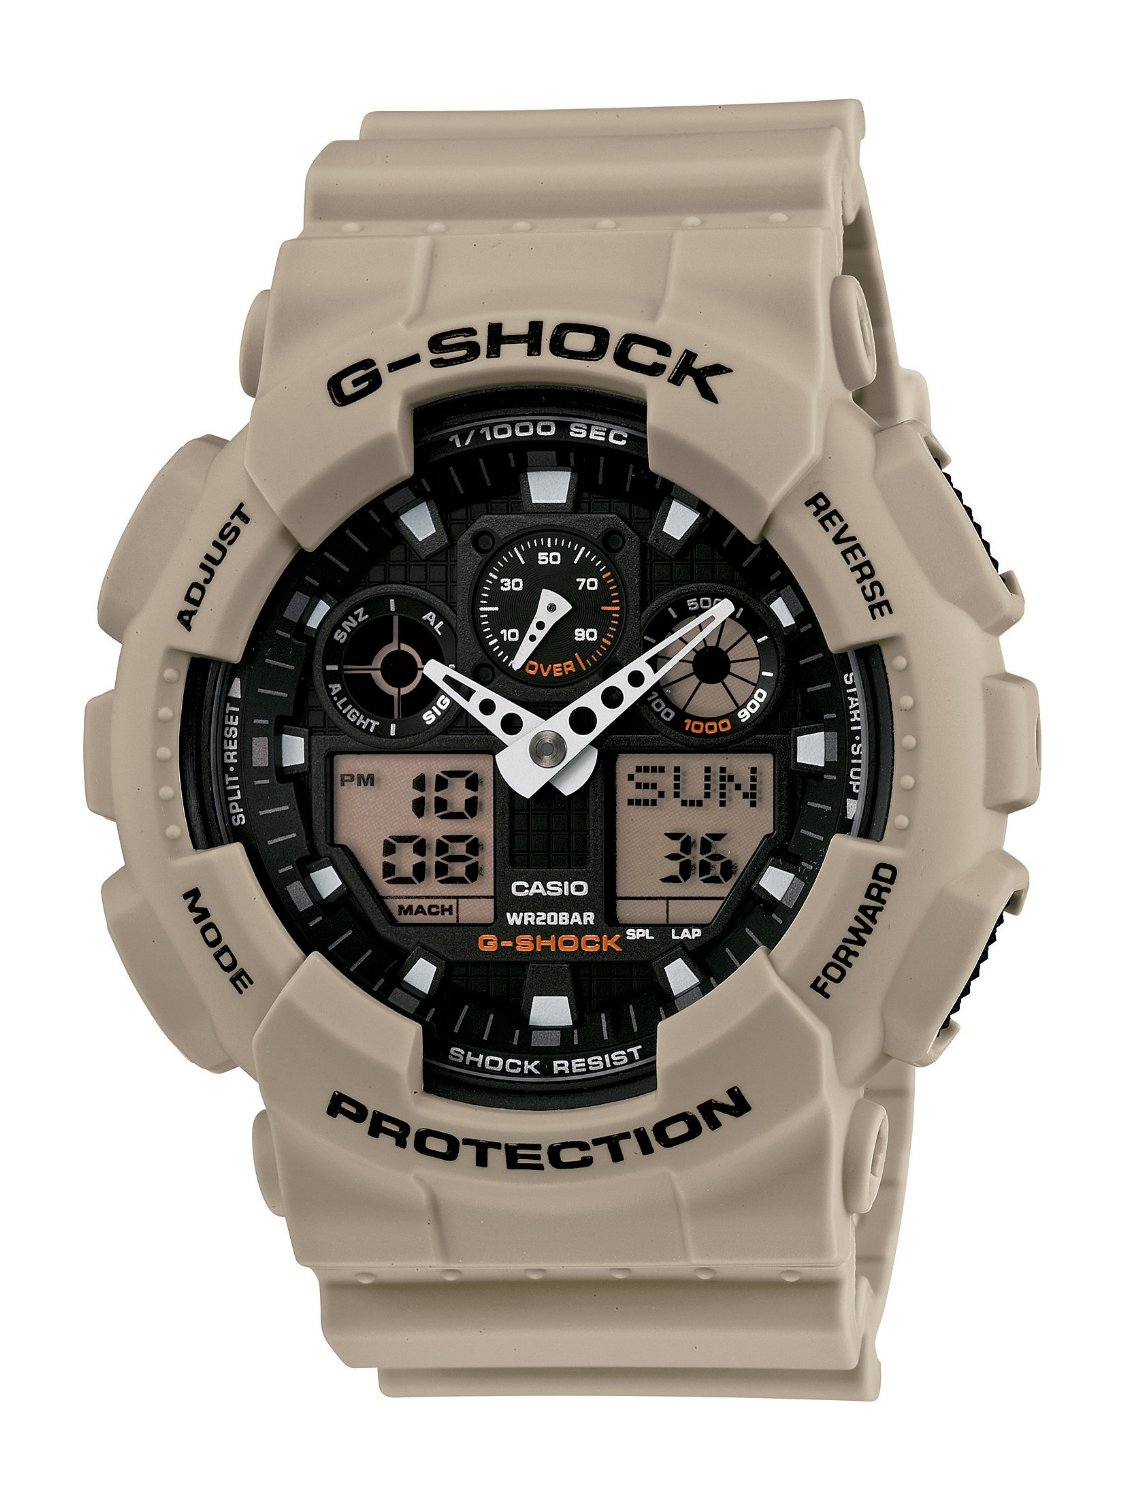 55 Military Inspired G Shock Prices Vary Watches Are All The